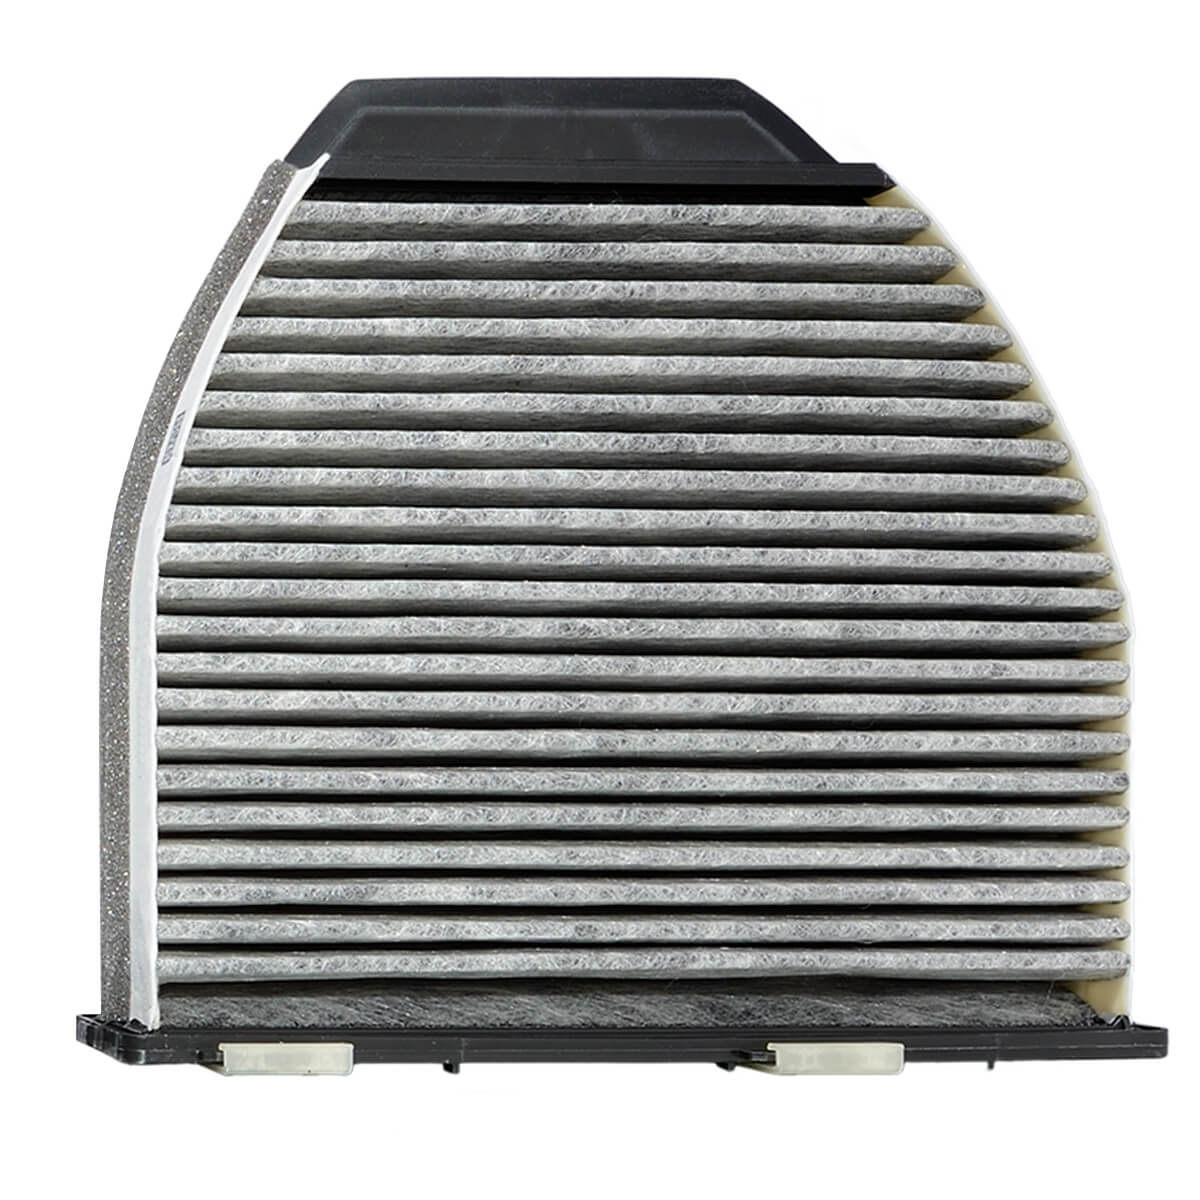 HONDA BEAT Cabin Filter